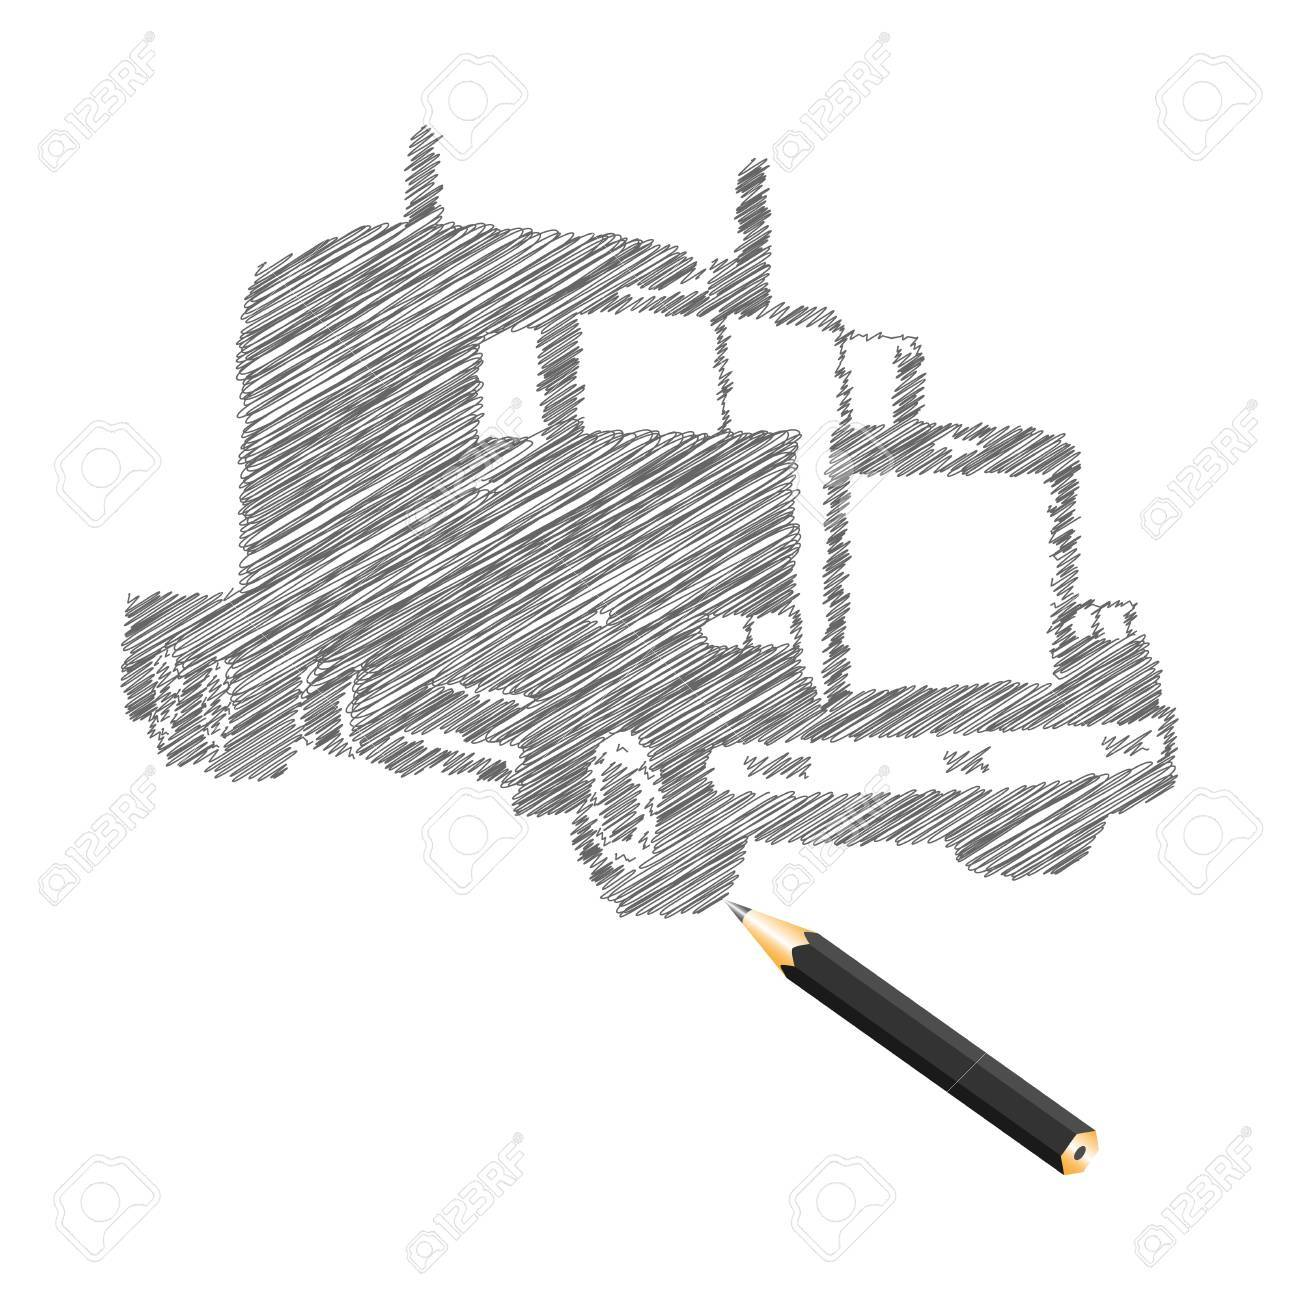 Hand-drown truck sketch, vector illustration Stock Vector - 9542911